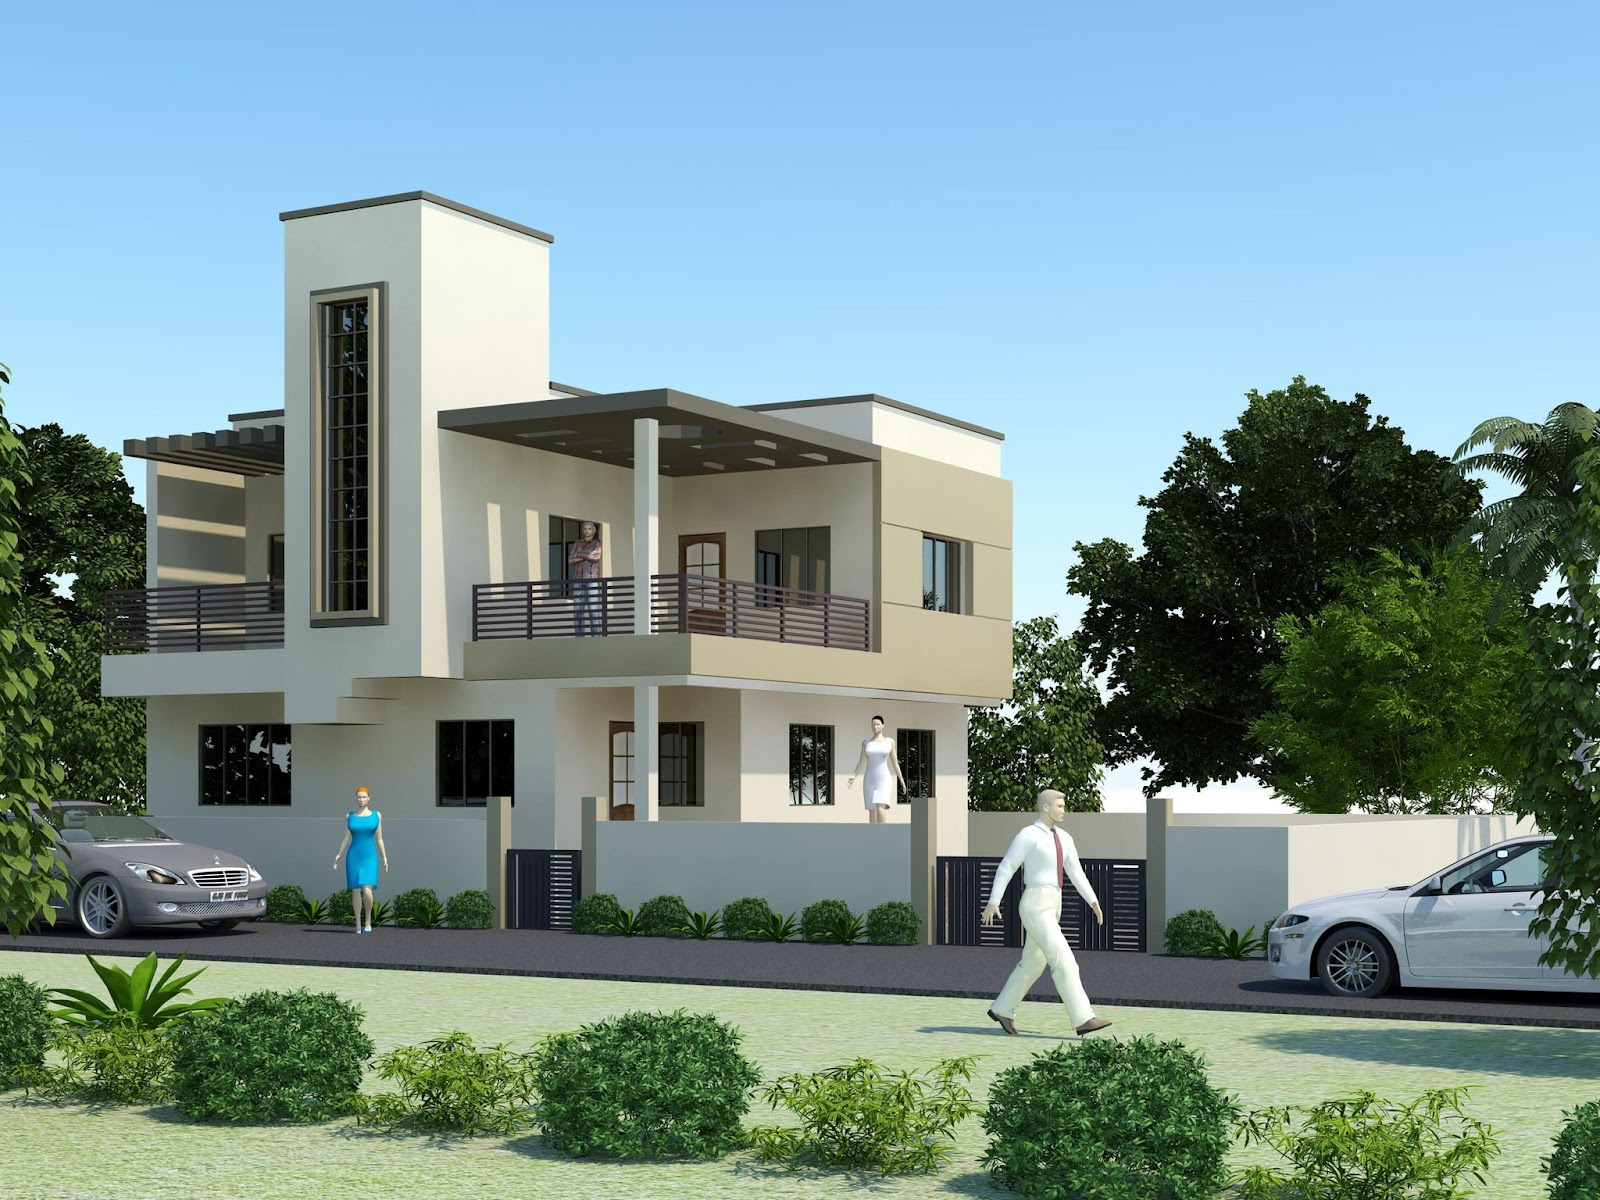 New home designs latest modern homes exterior designs for Design house